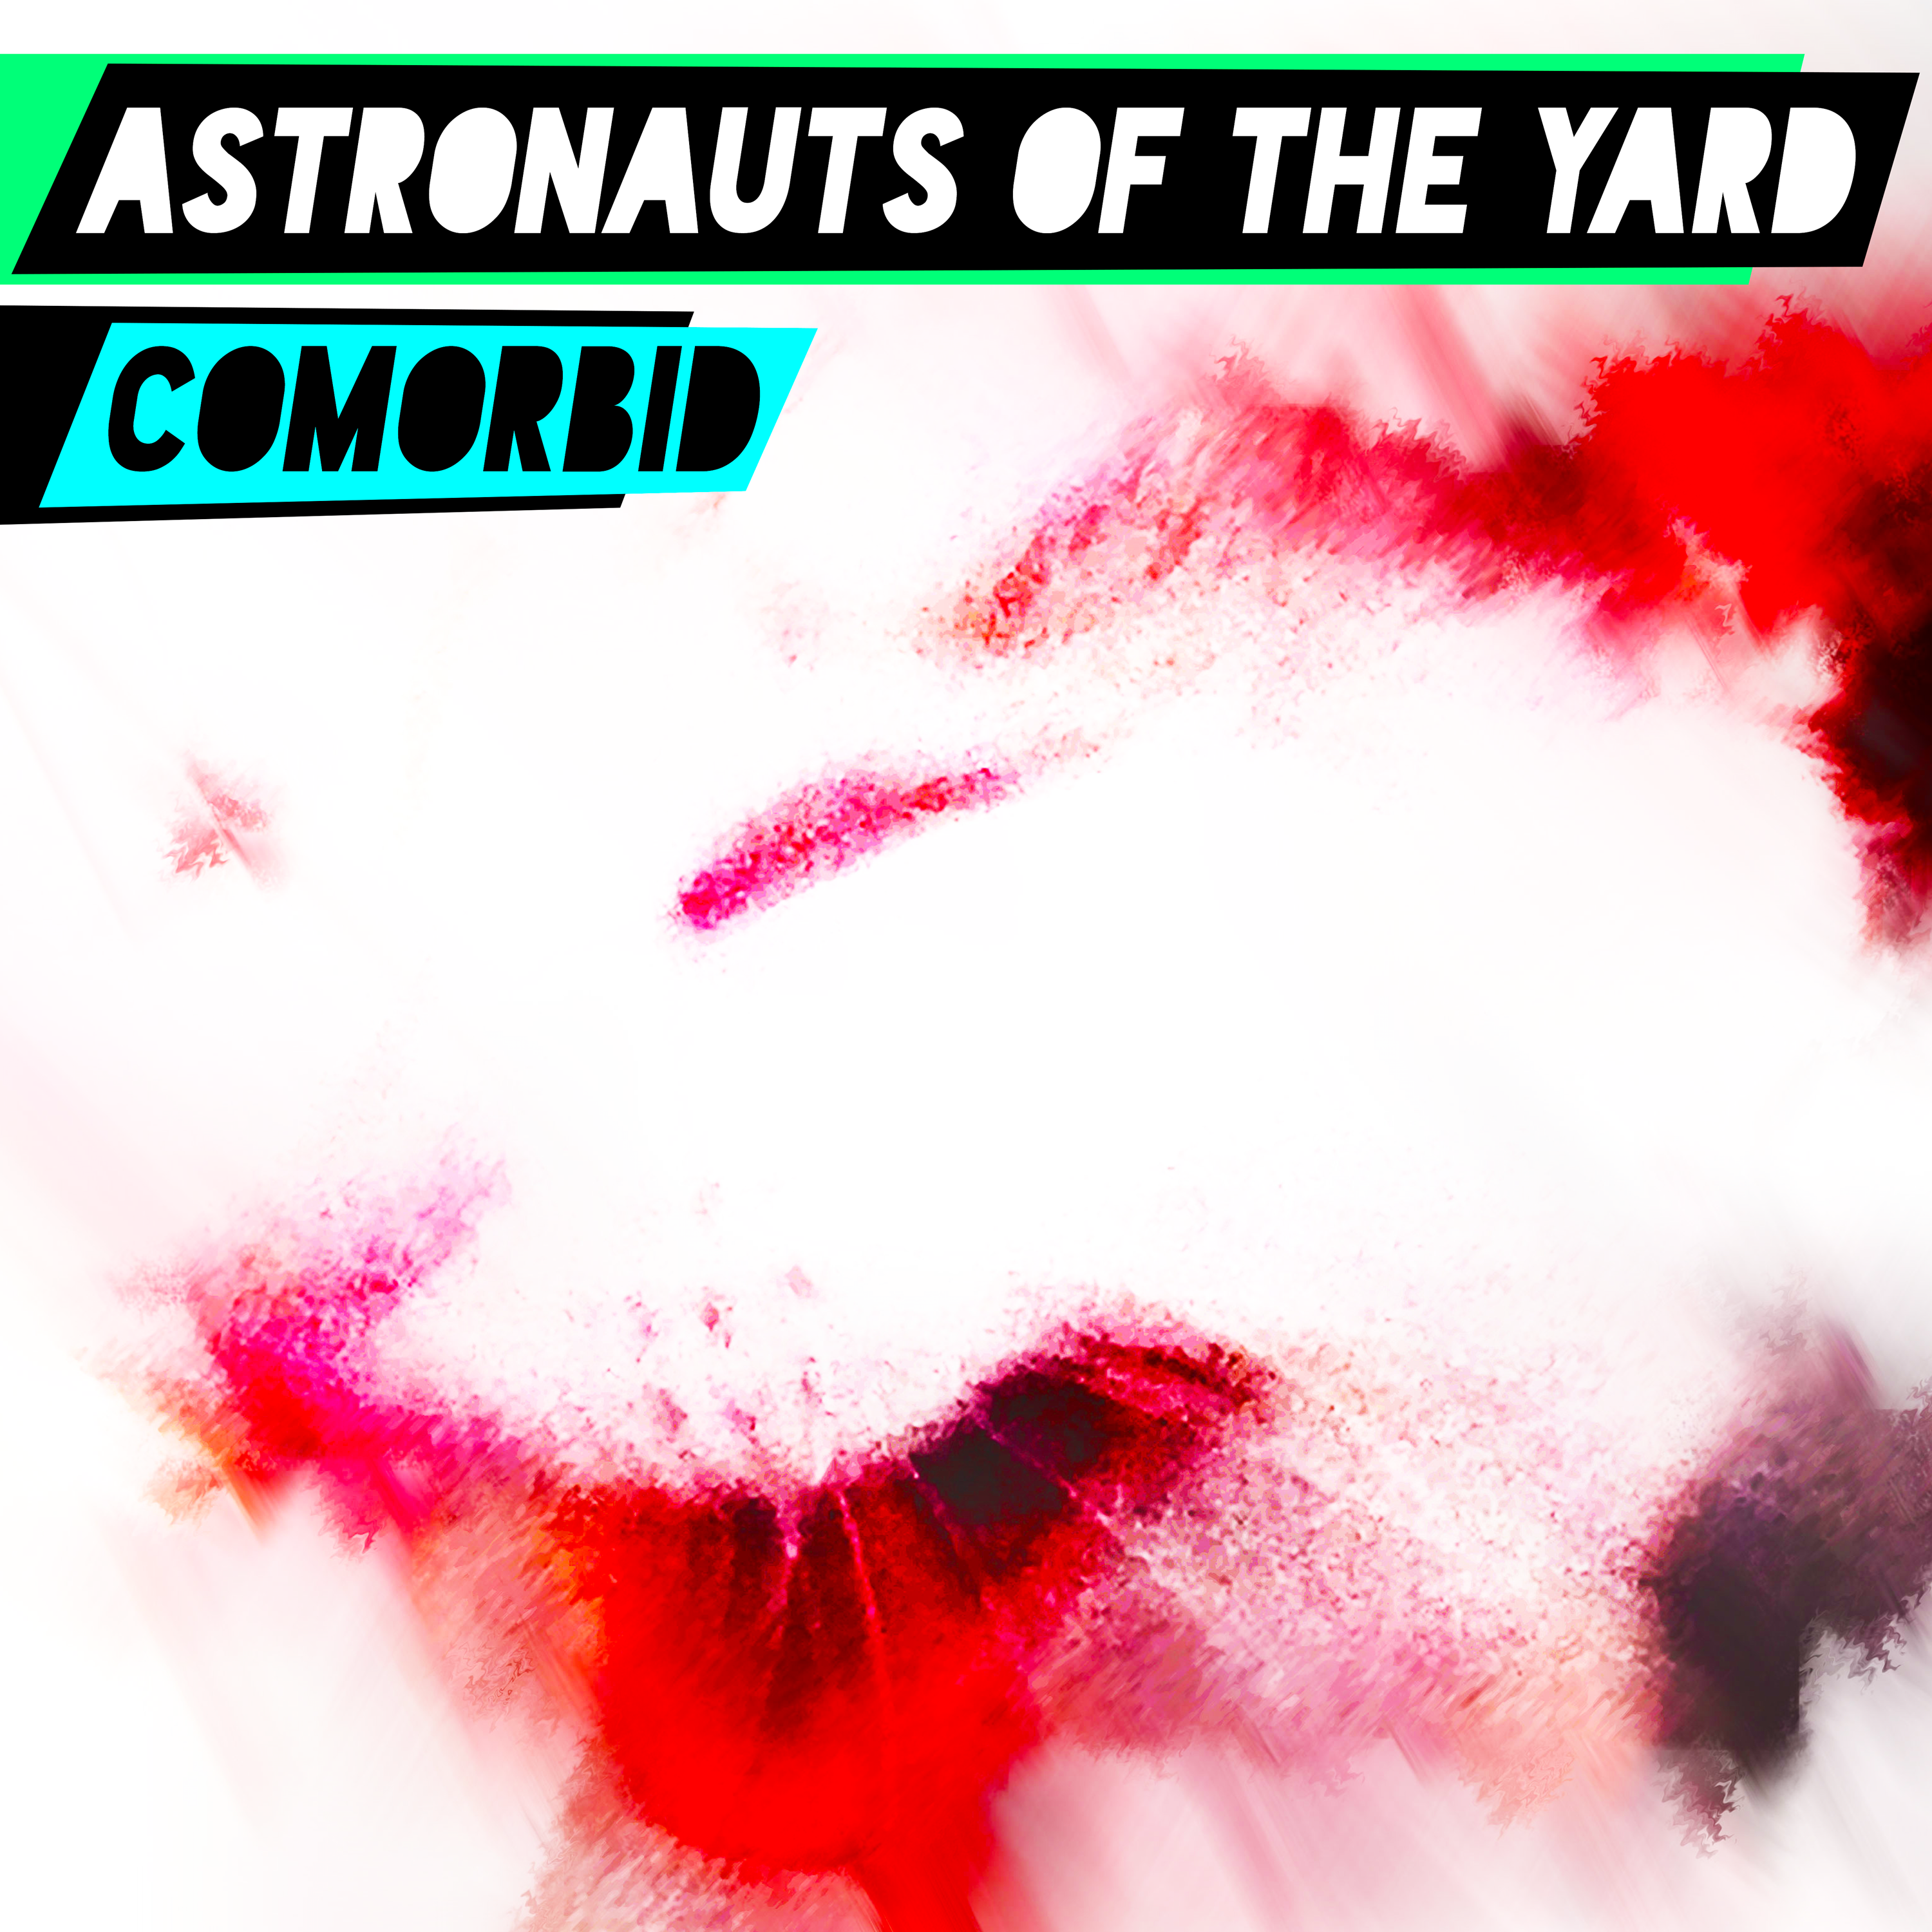 astronauts-of-the-yard-cd-cover